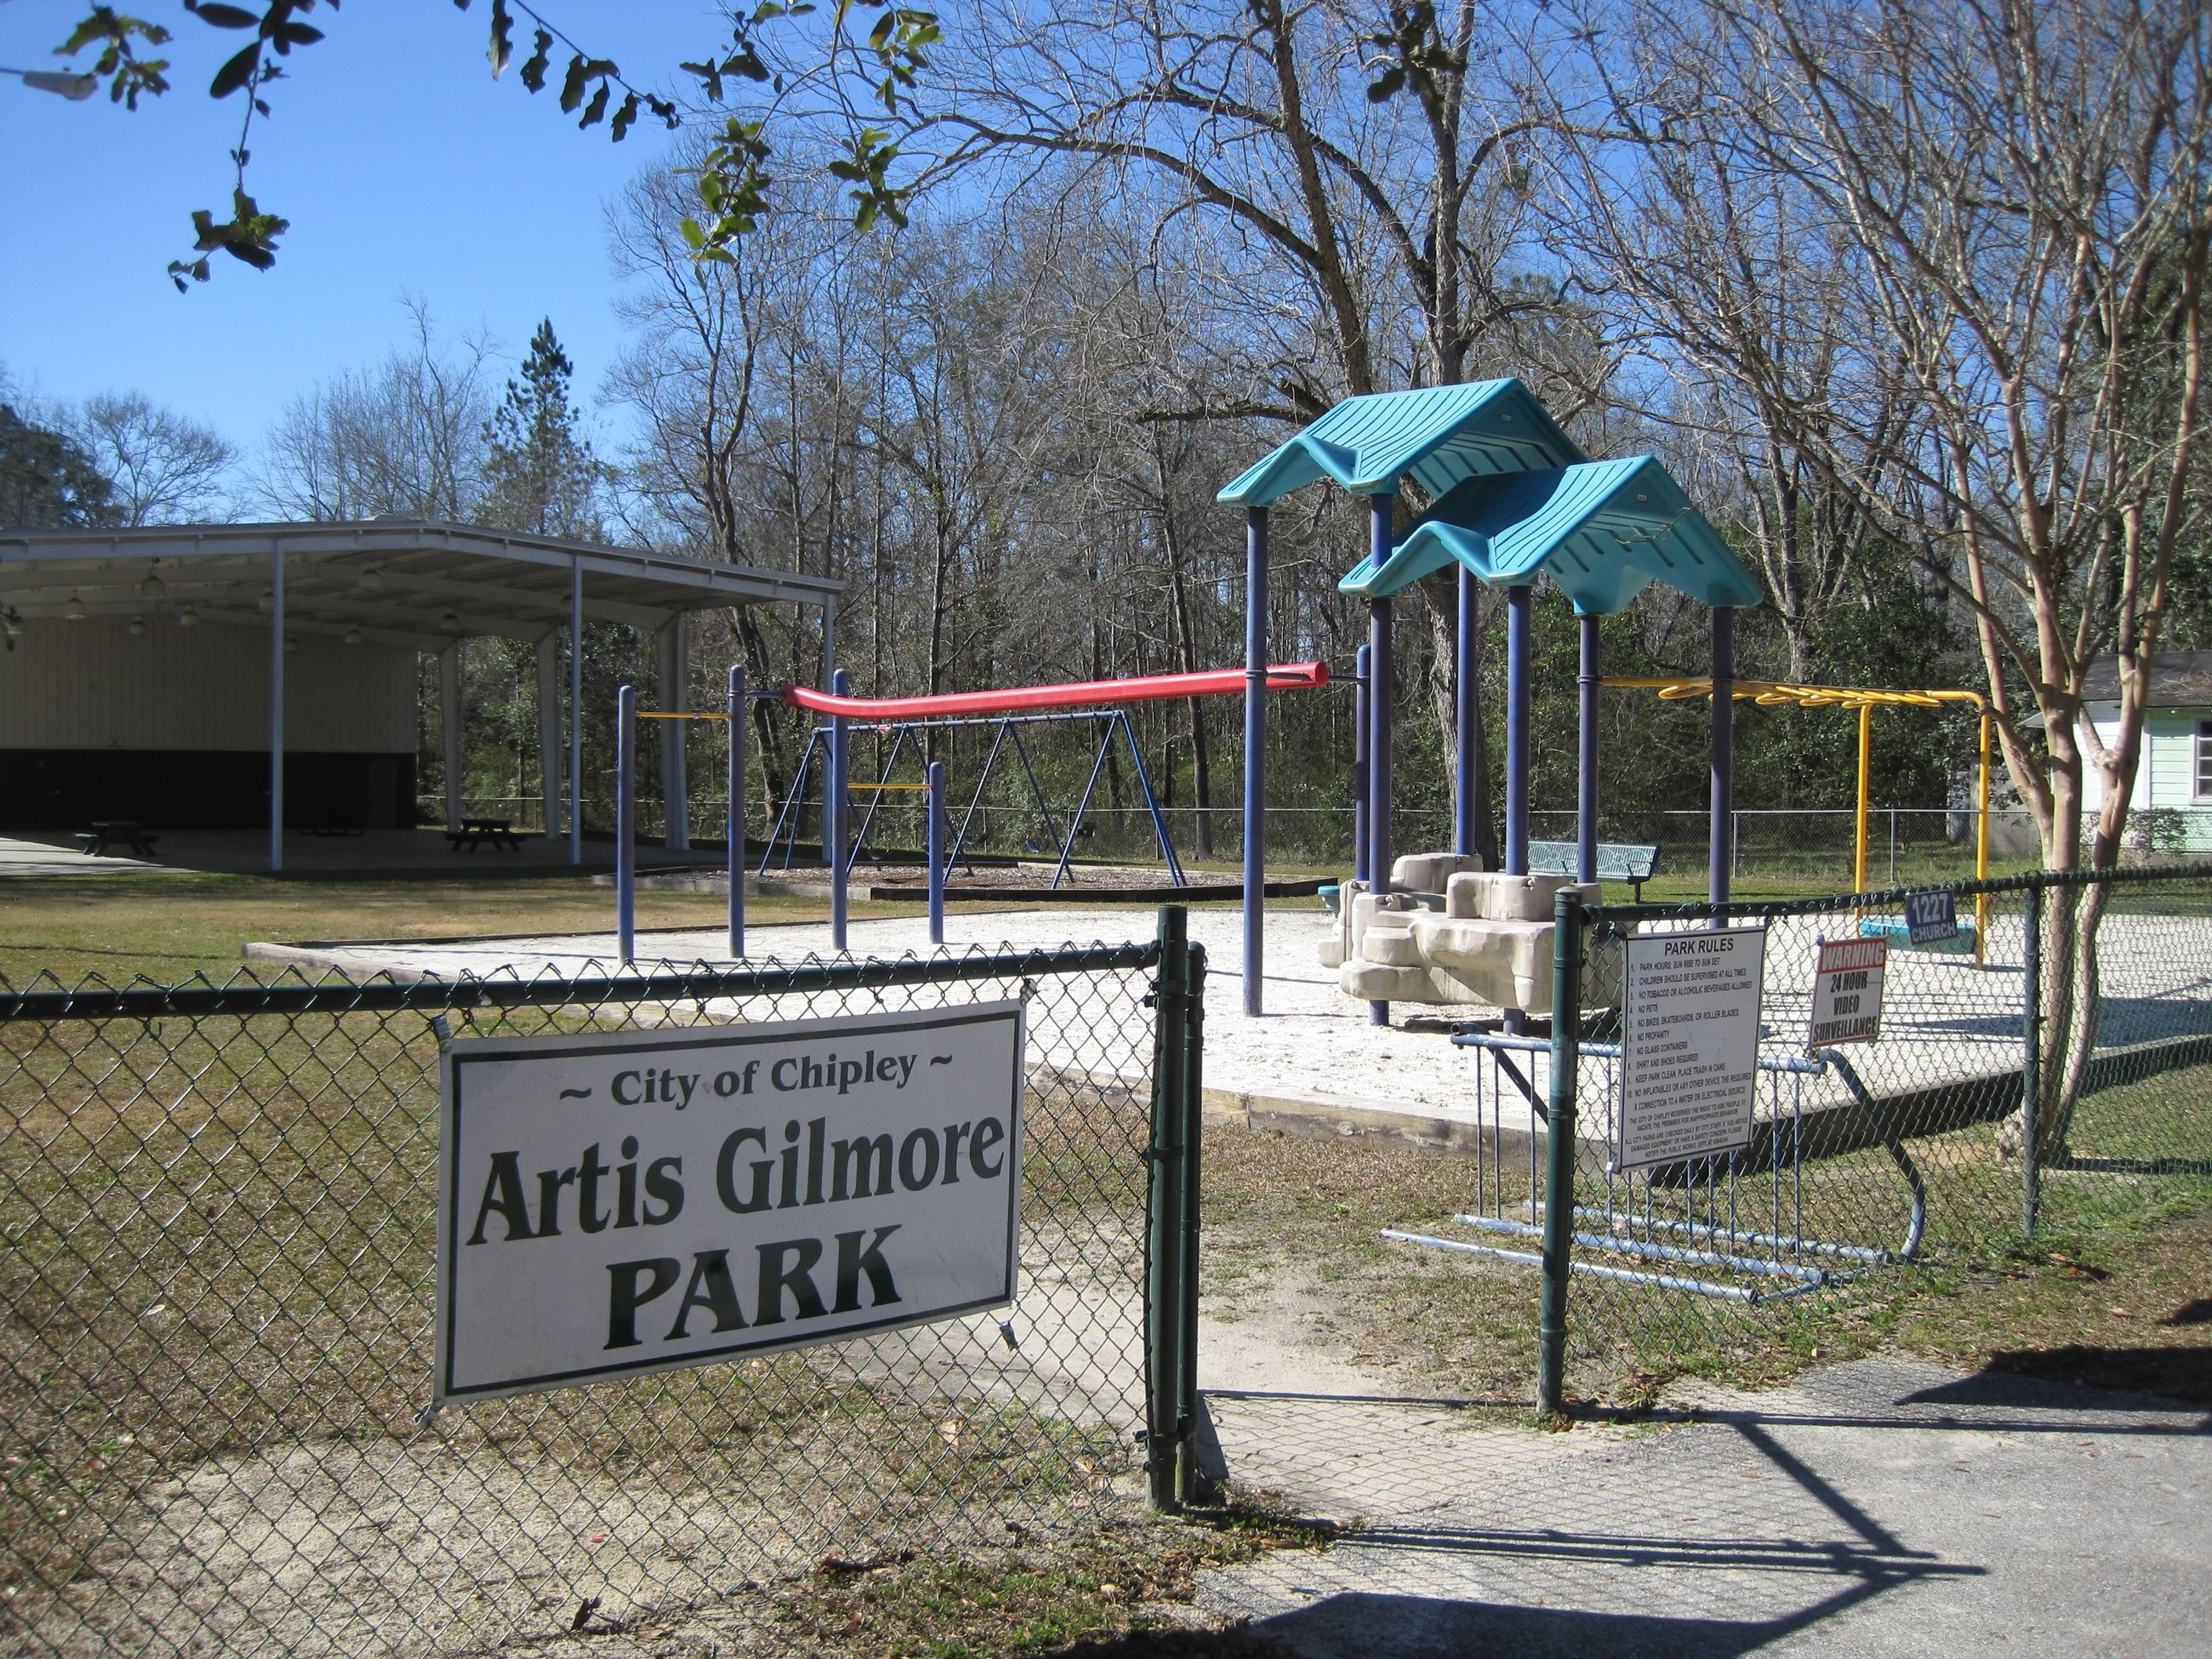 Artis Gilmore Park Gate and Playground